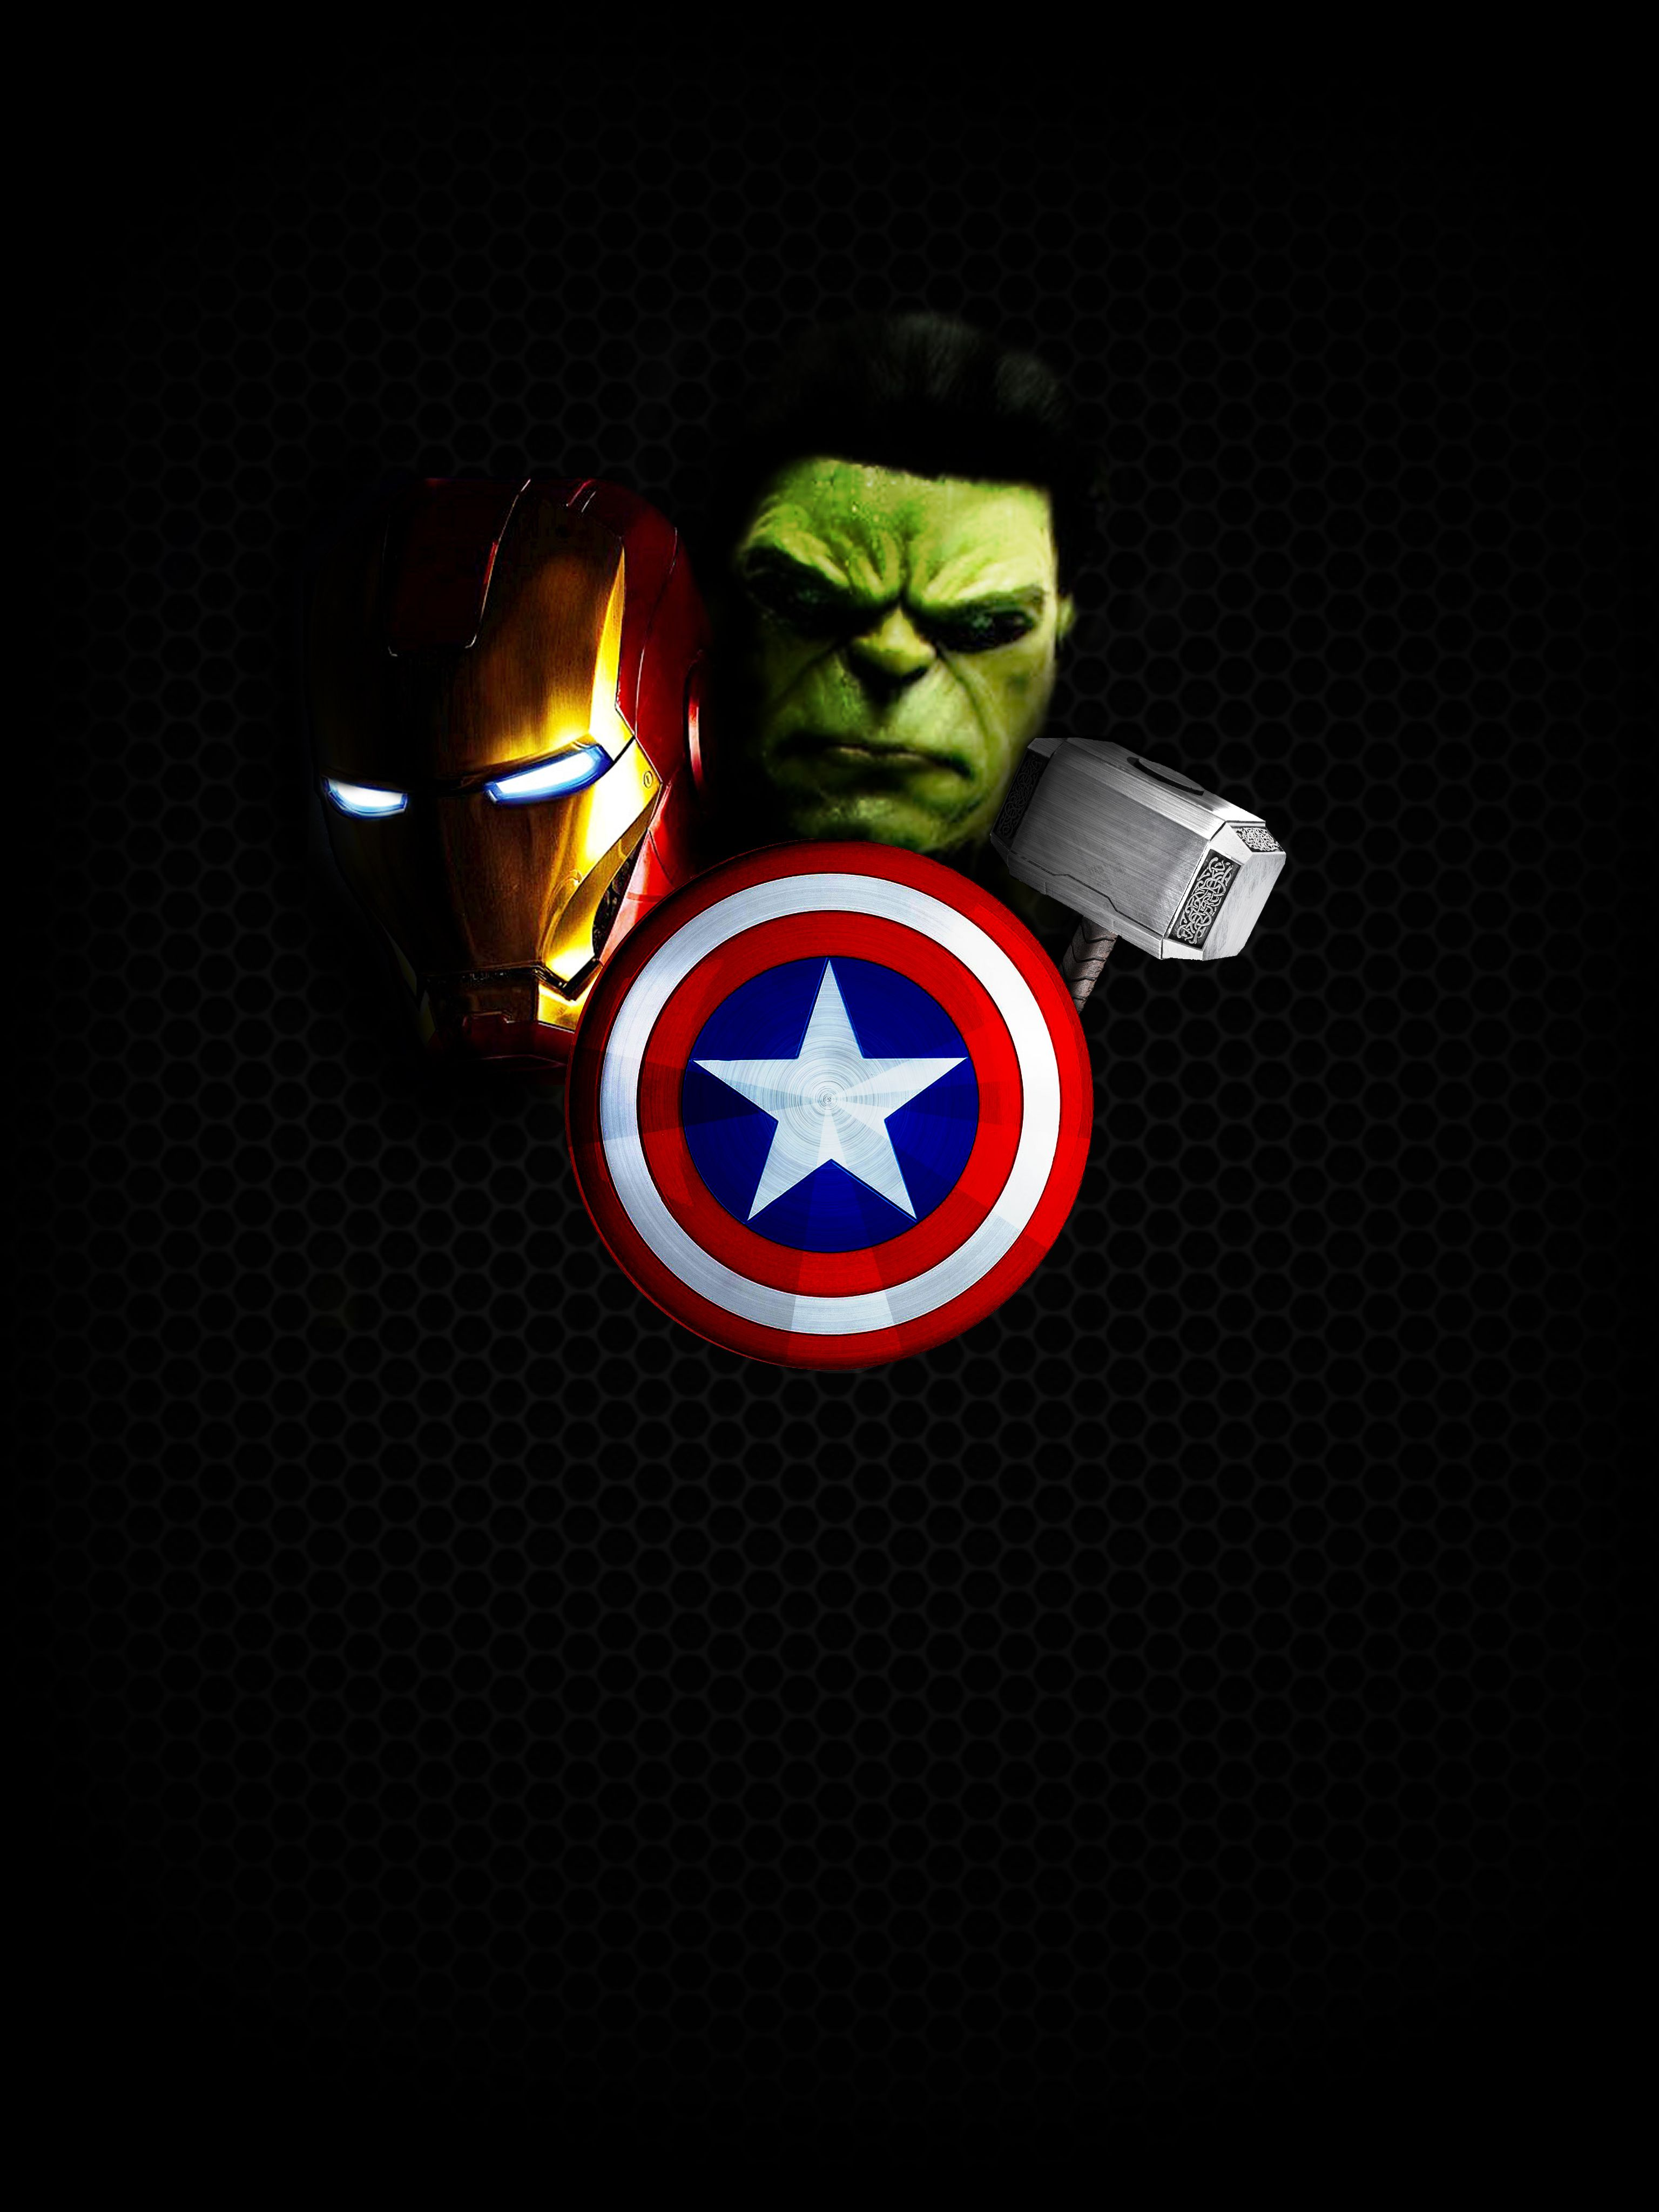 Iphone wallpaper tumblr marvel -  Iphone Ios 7 Wallpaper Tumblr For Ipad